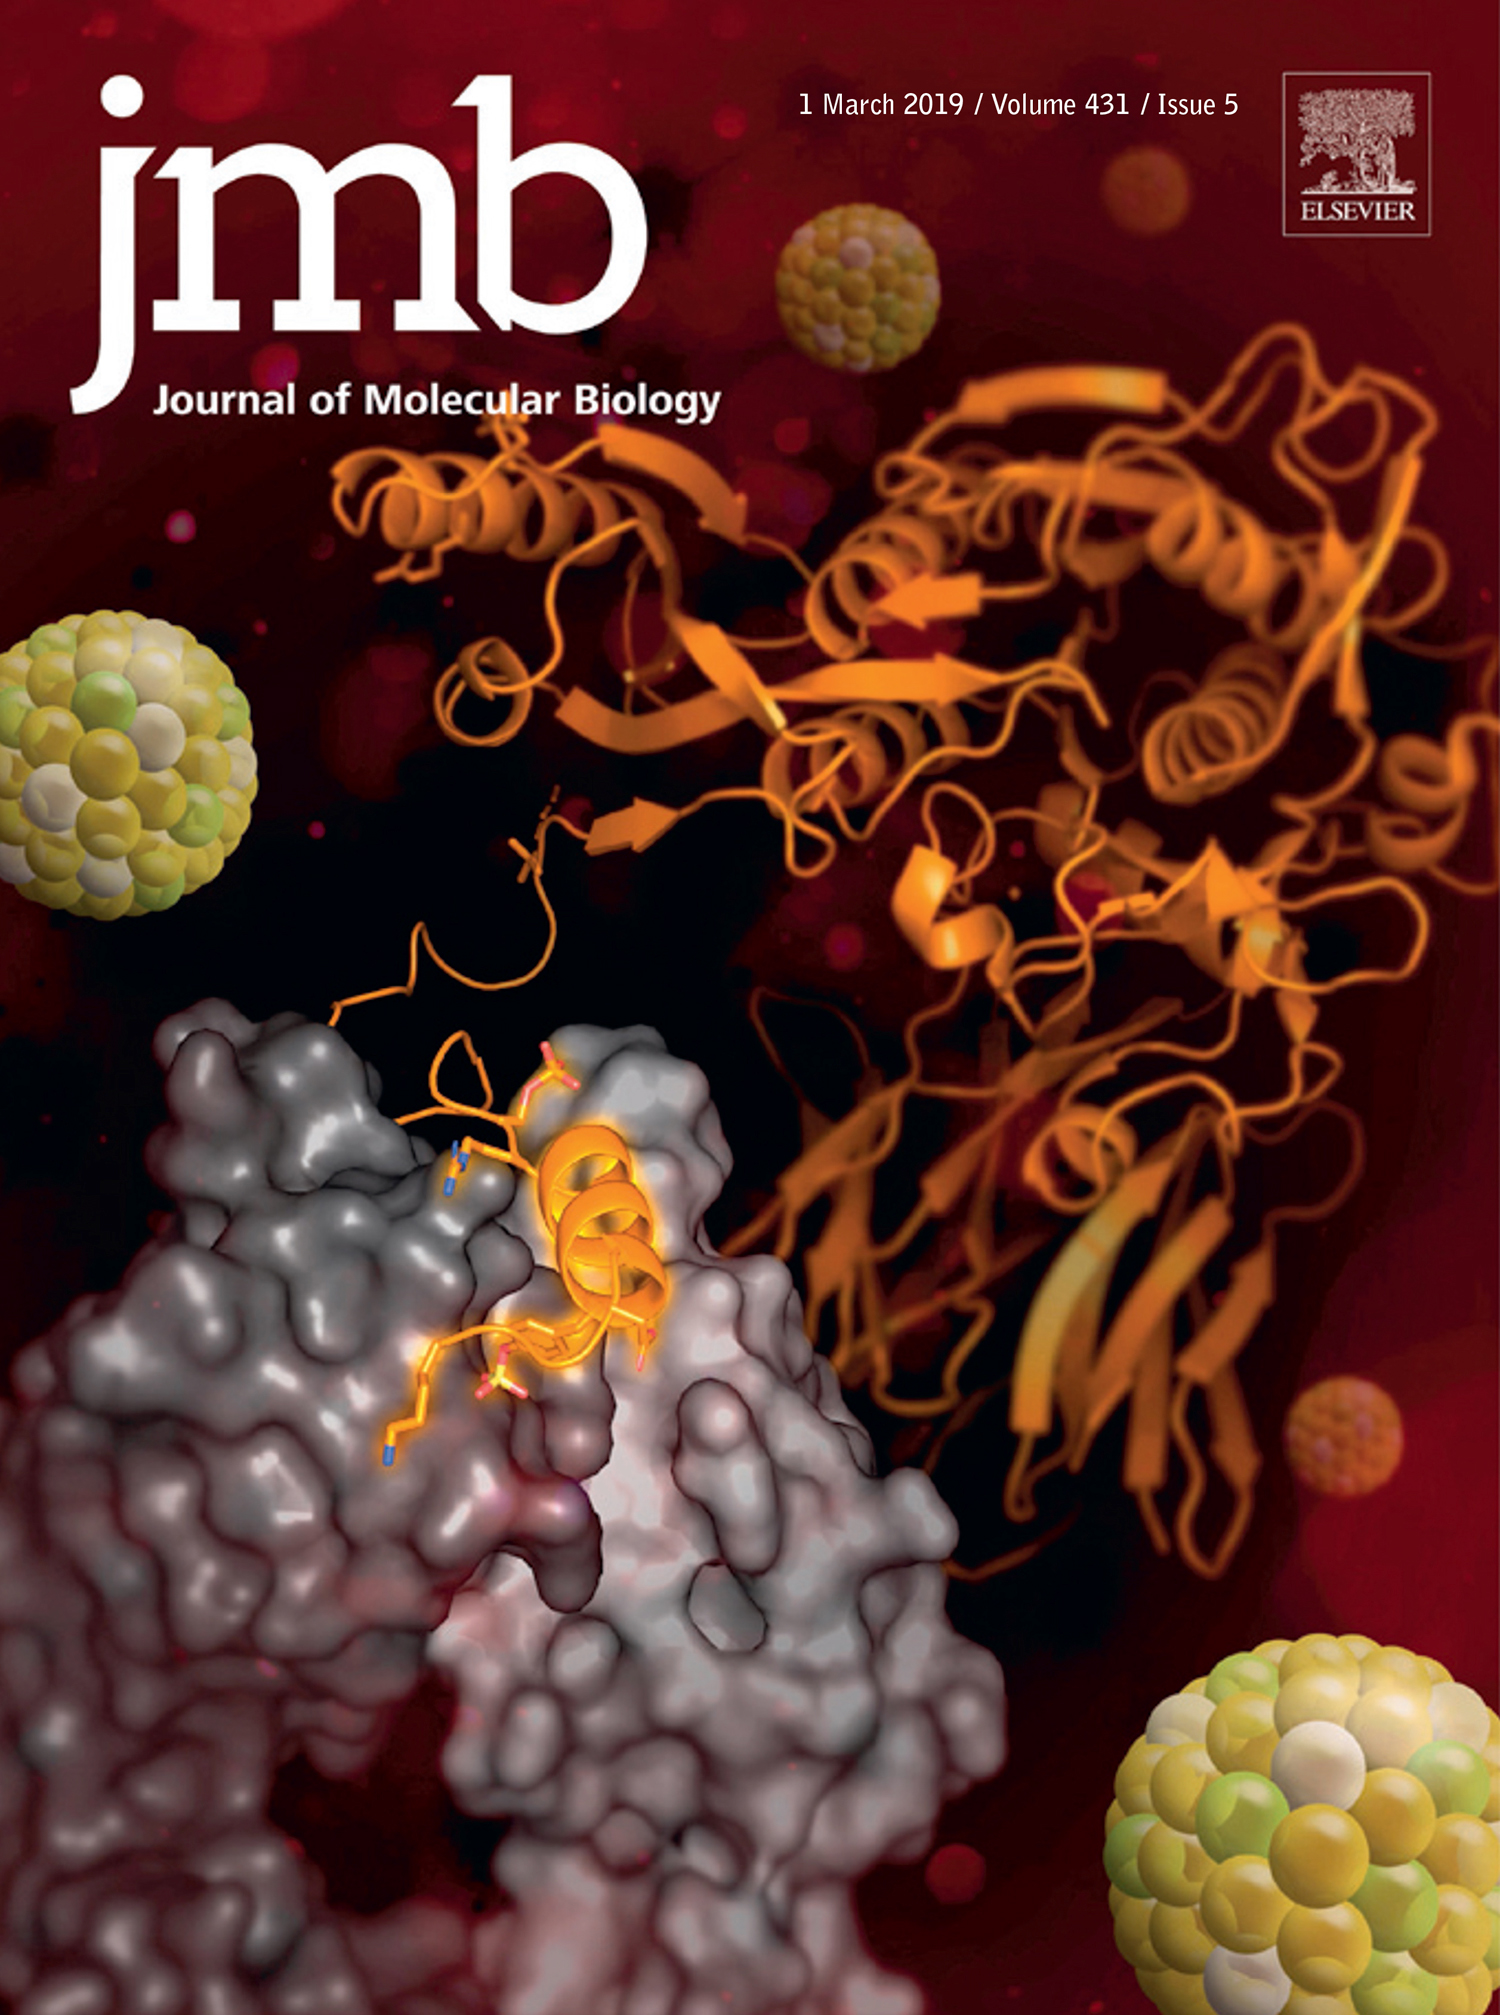 Identification of a Helical Segment within the Intrinsically Disordered Region of the PCSK9 Prodomain   Ultsch, et al.,  Journal of Molecular Biology , Vol 431 No 5